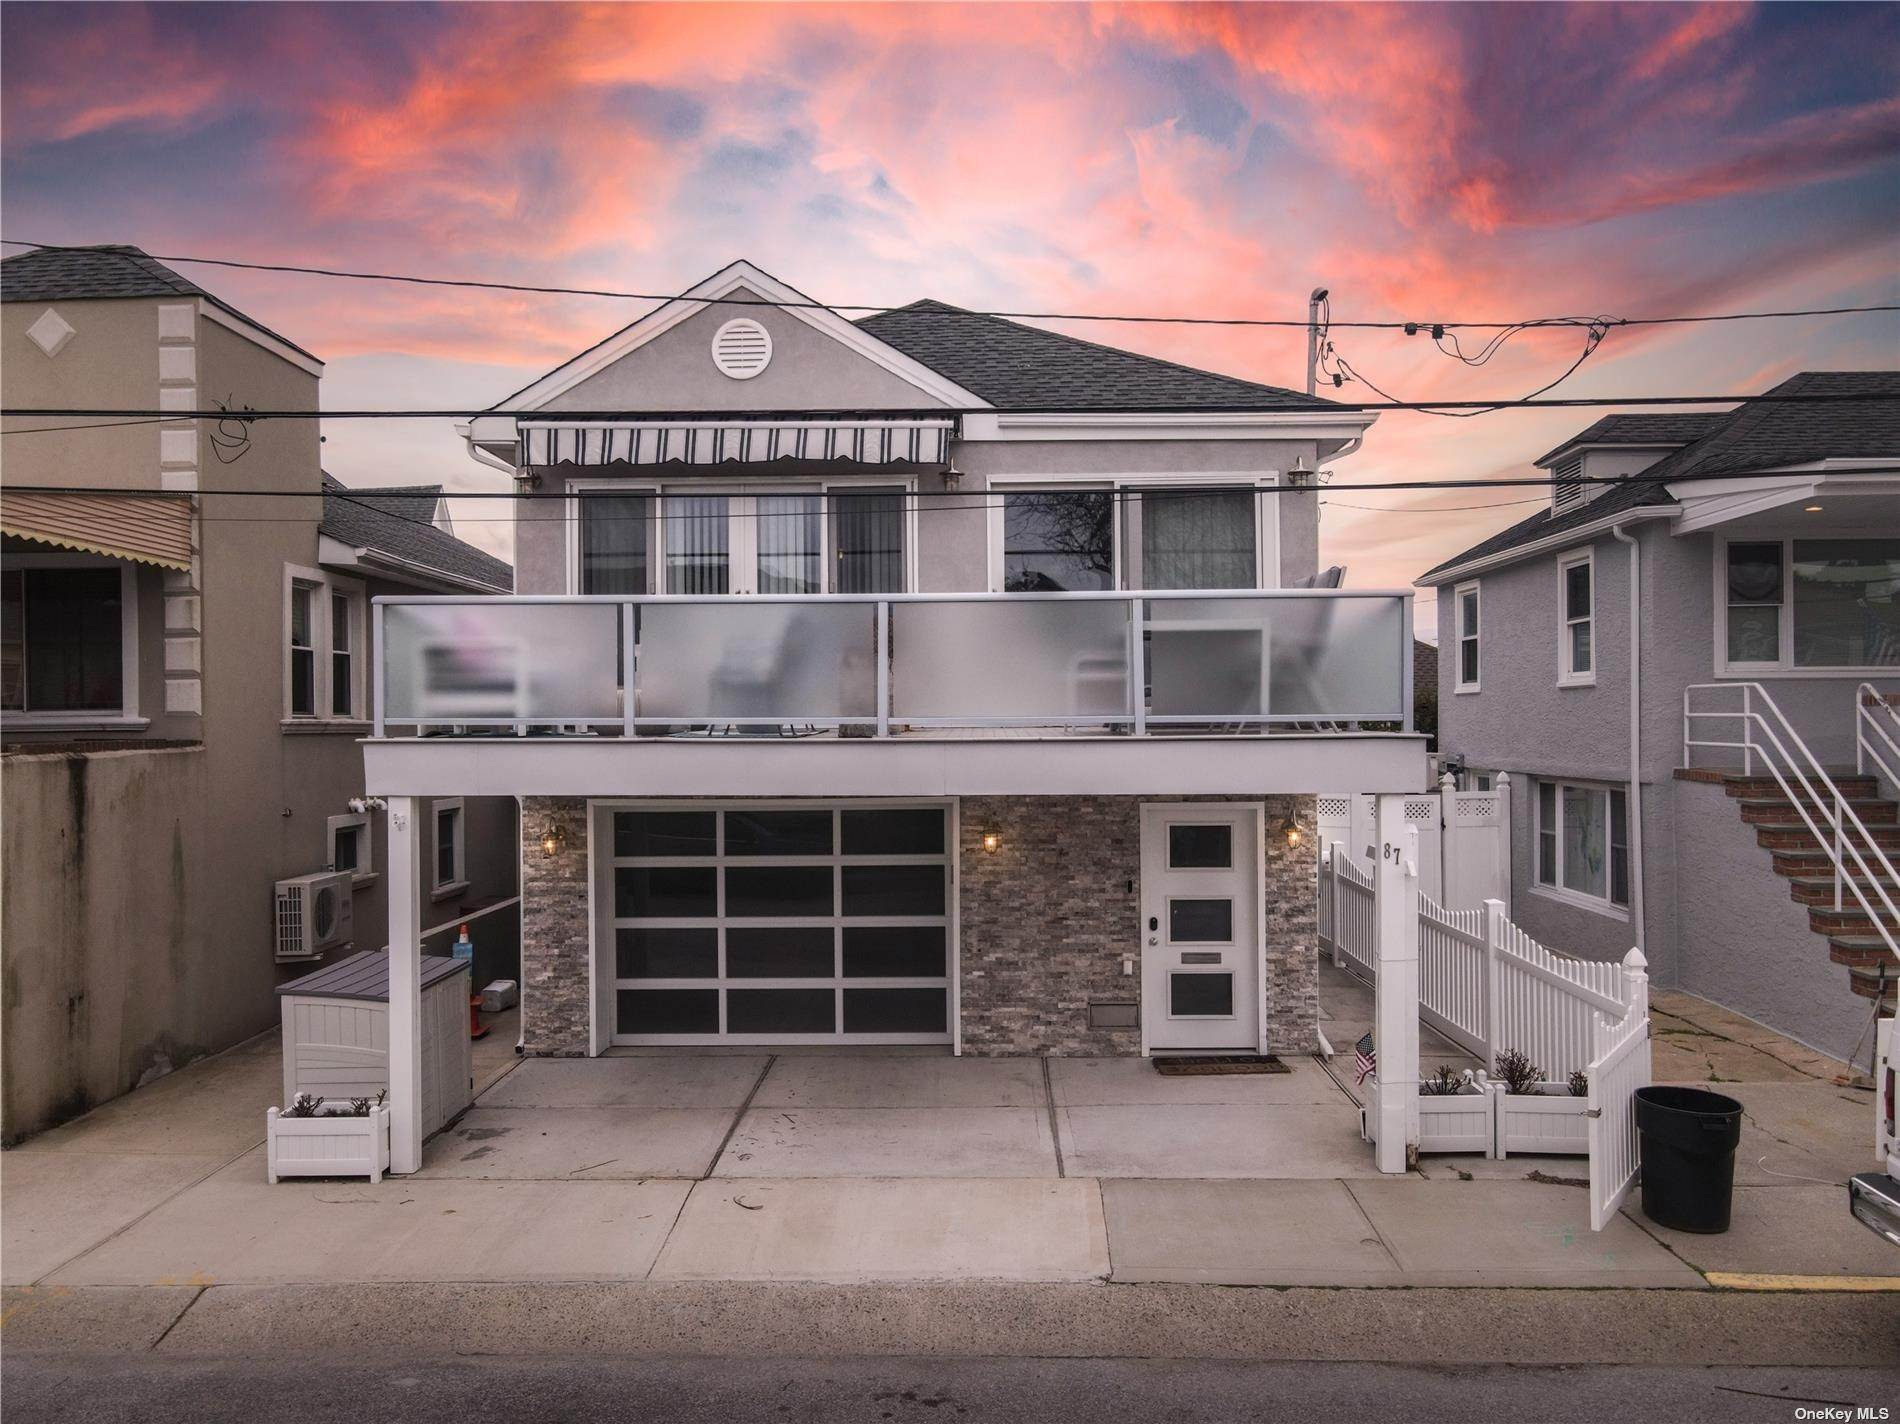 Residential for Sale at 87 Mohawk Avenue East Atlantic Beach, New York 11561 United States